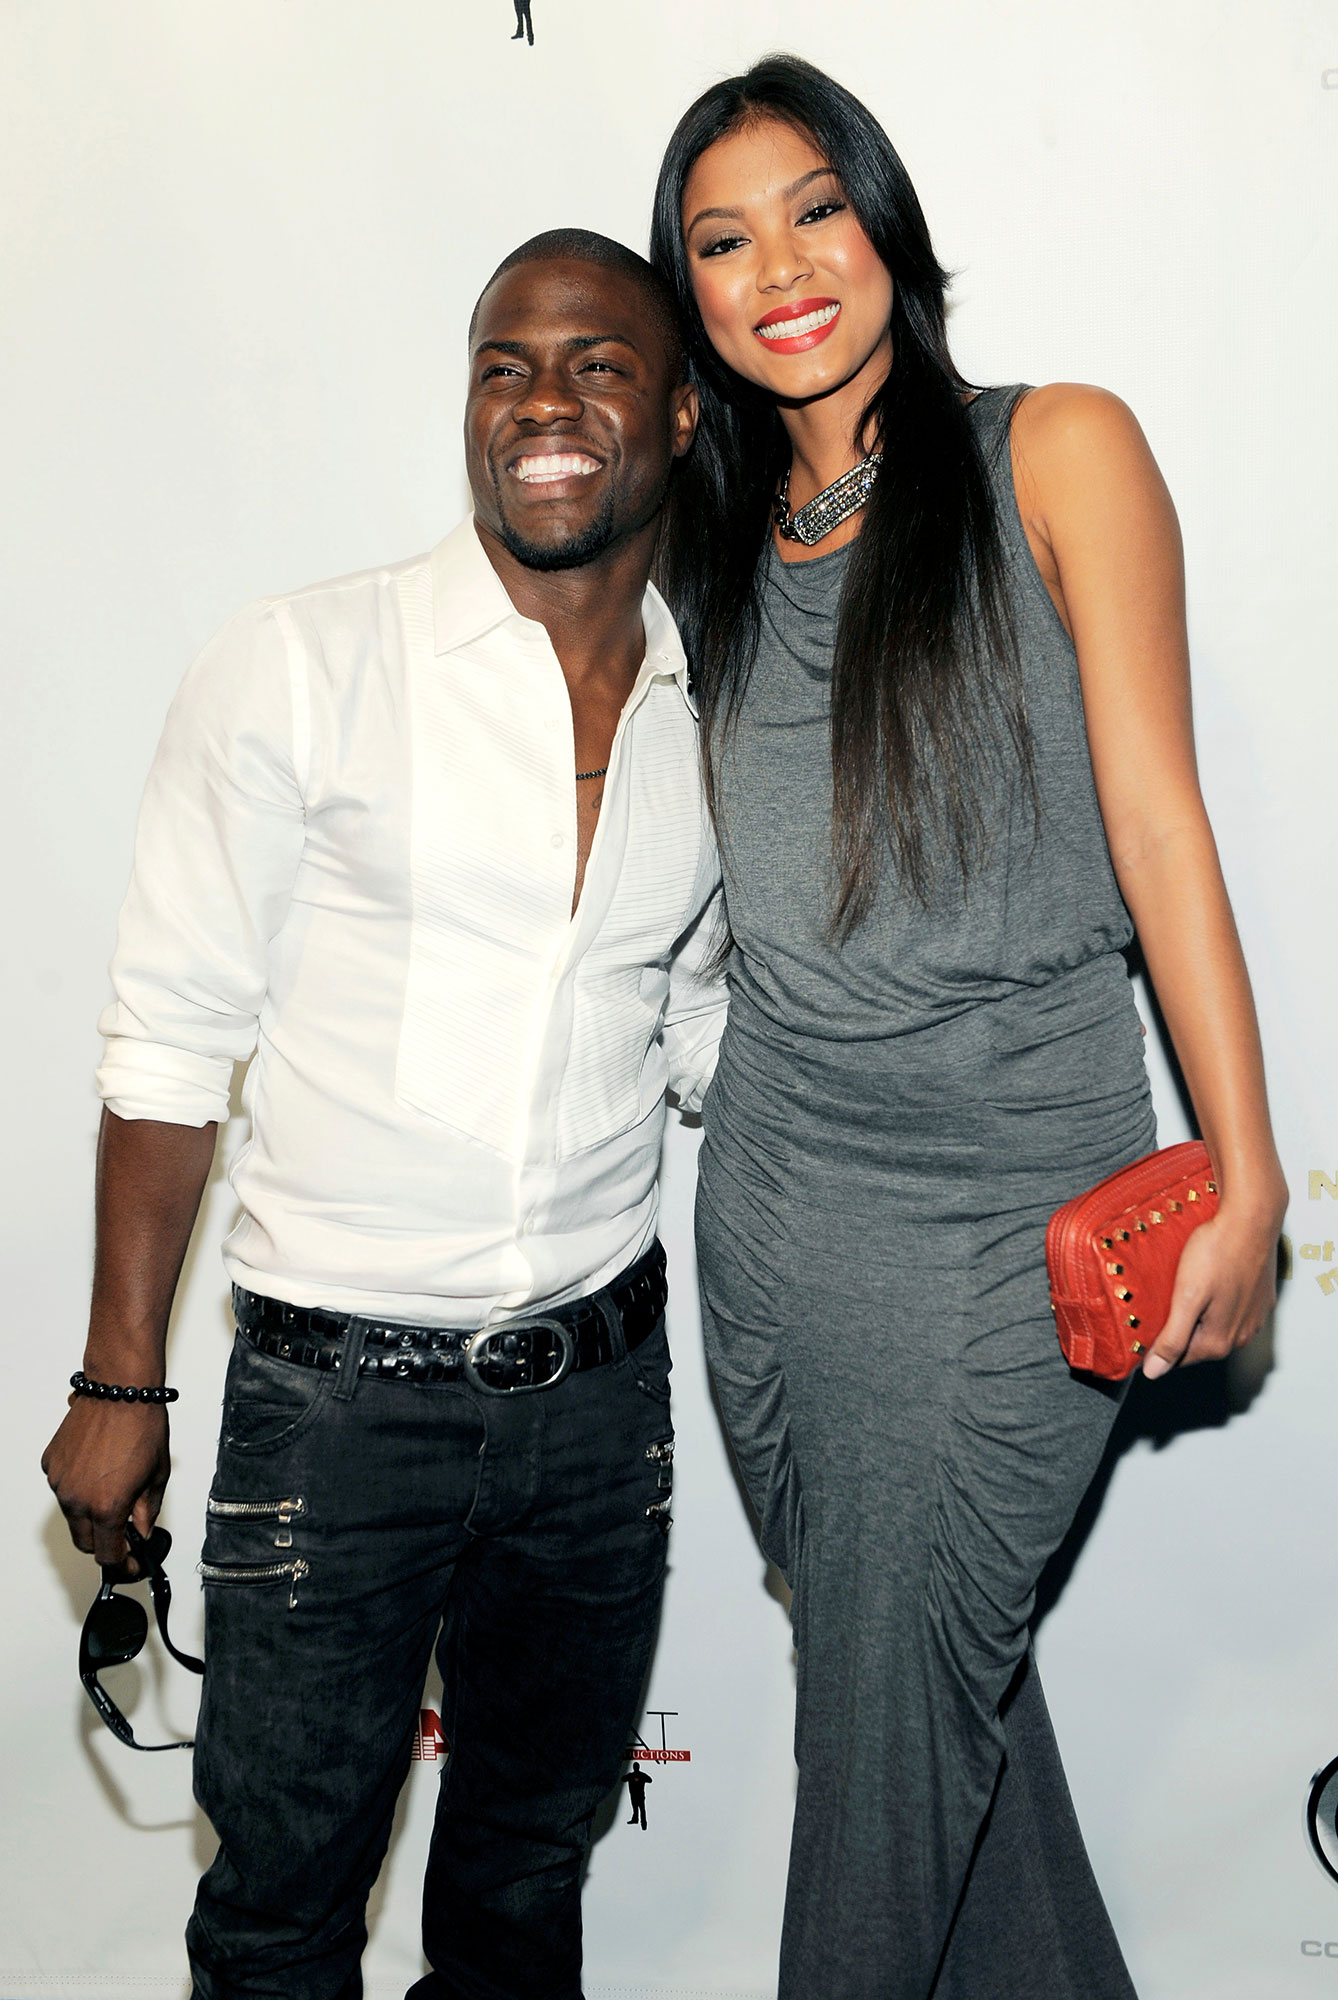 Kevin Hart and Eniko Parrish: A Timeline of Their Relationship